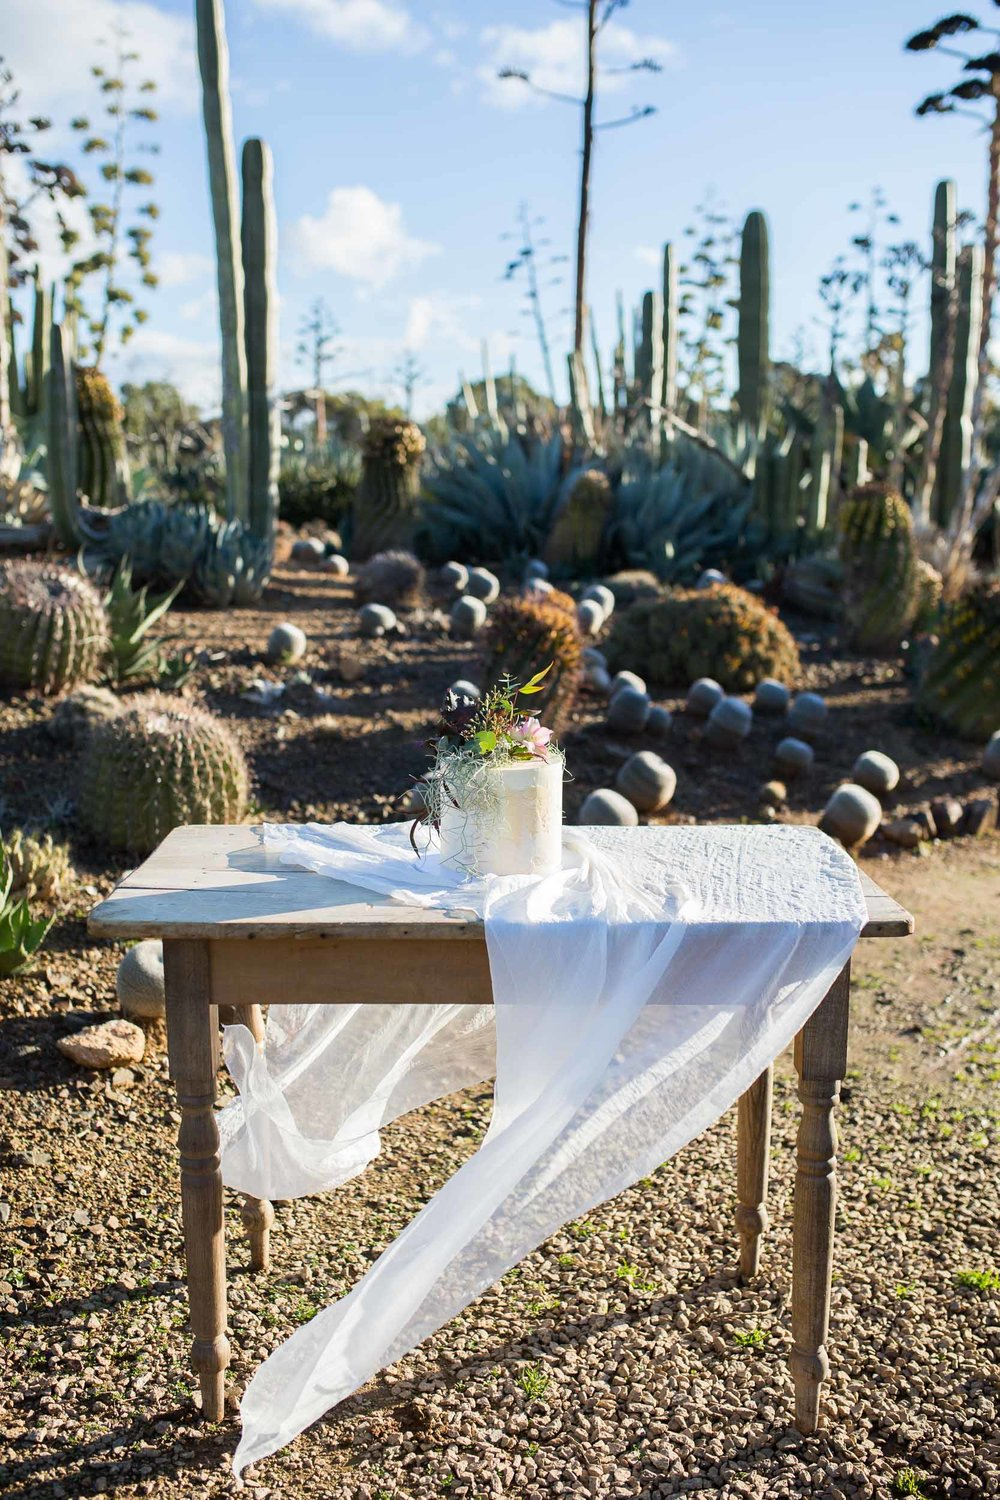 Kas-Richards-Ruby-and-James-Stylist-Cactus-Country-Karen-Willis-Holmes-Bridal-One-Heart-Studios-Boho-Wedding-17.jpg